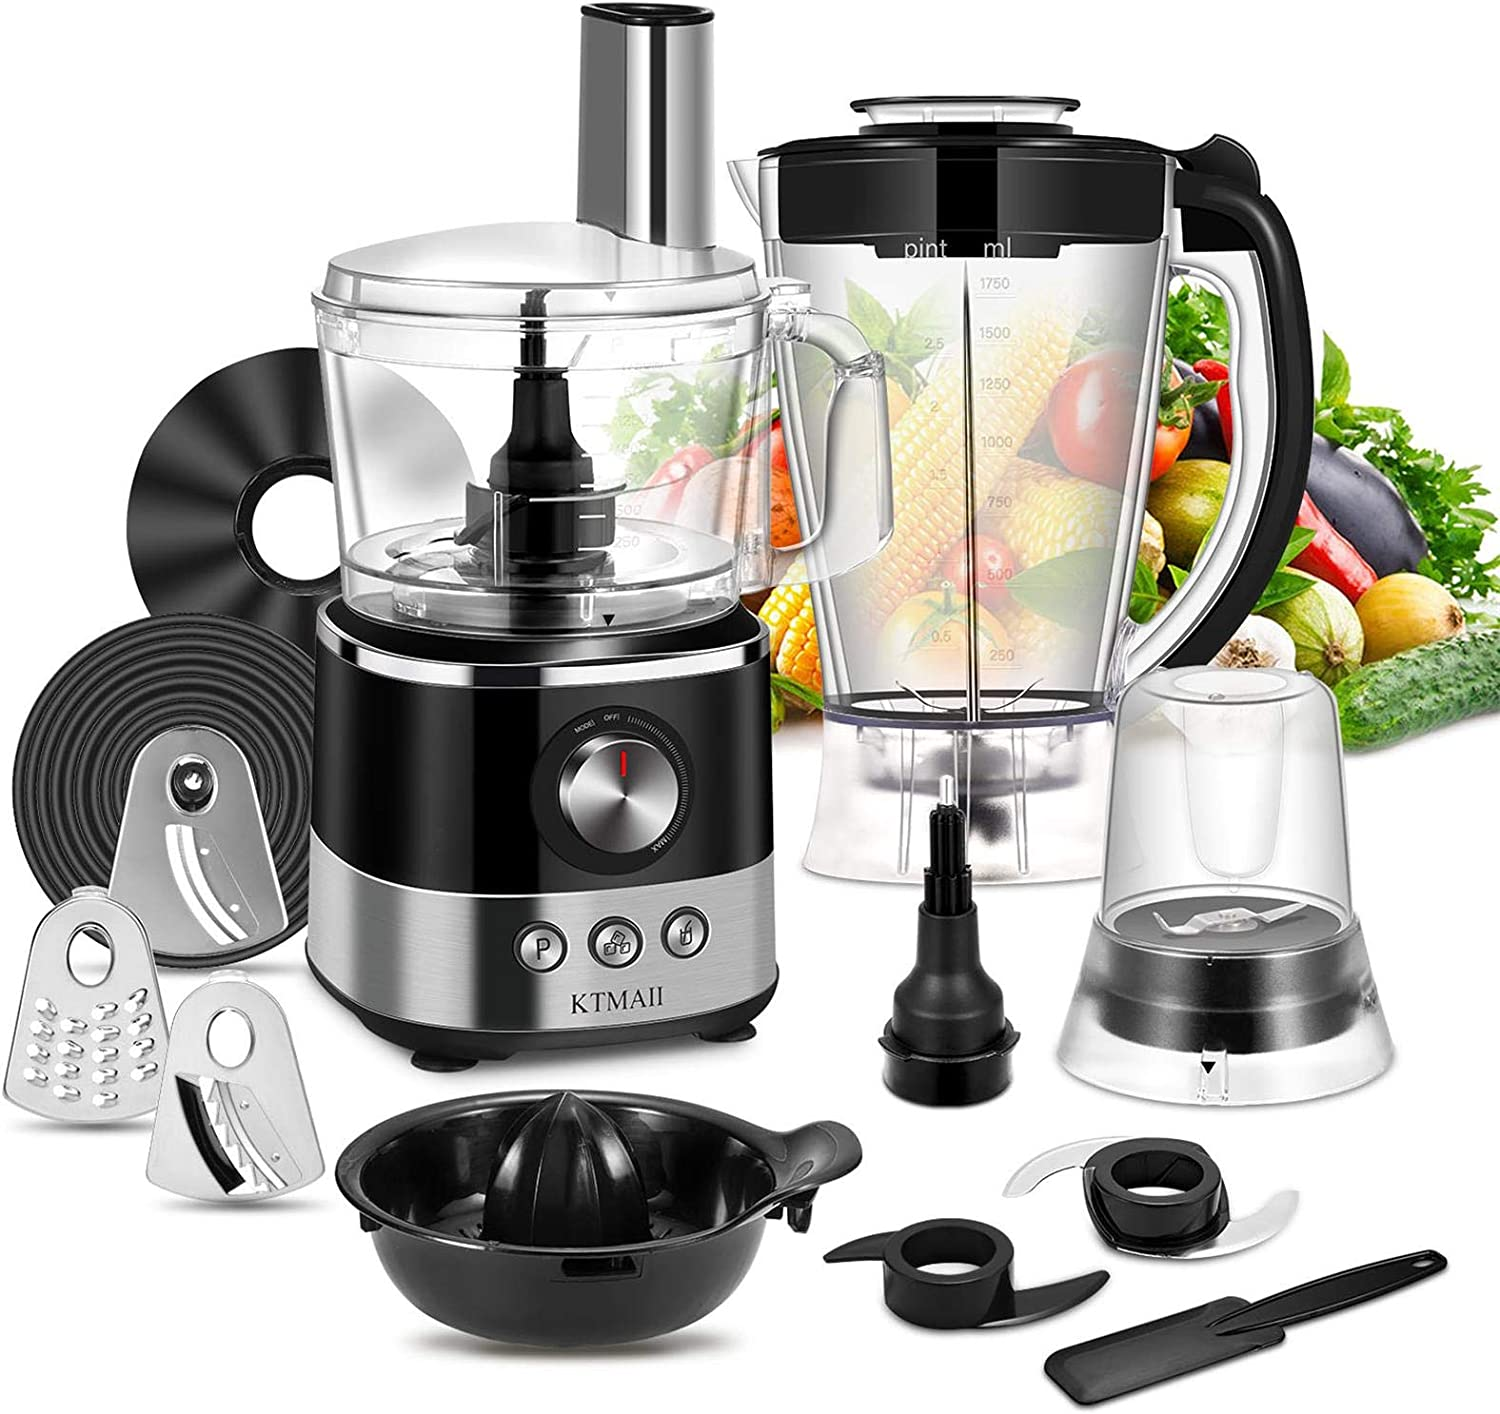 Food Processor Blender Combo, KTMAII 7-Cup Food Chopper with Mixing Bowl, Juicer, Grinder, Mashing Blades, Dough Blade, 3 Cutting Blades and 1 Disc, 650 Watts Base, Black